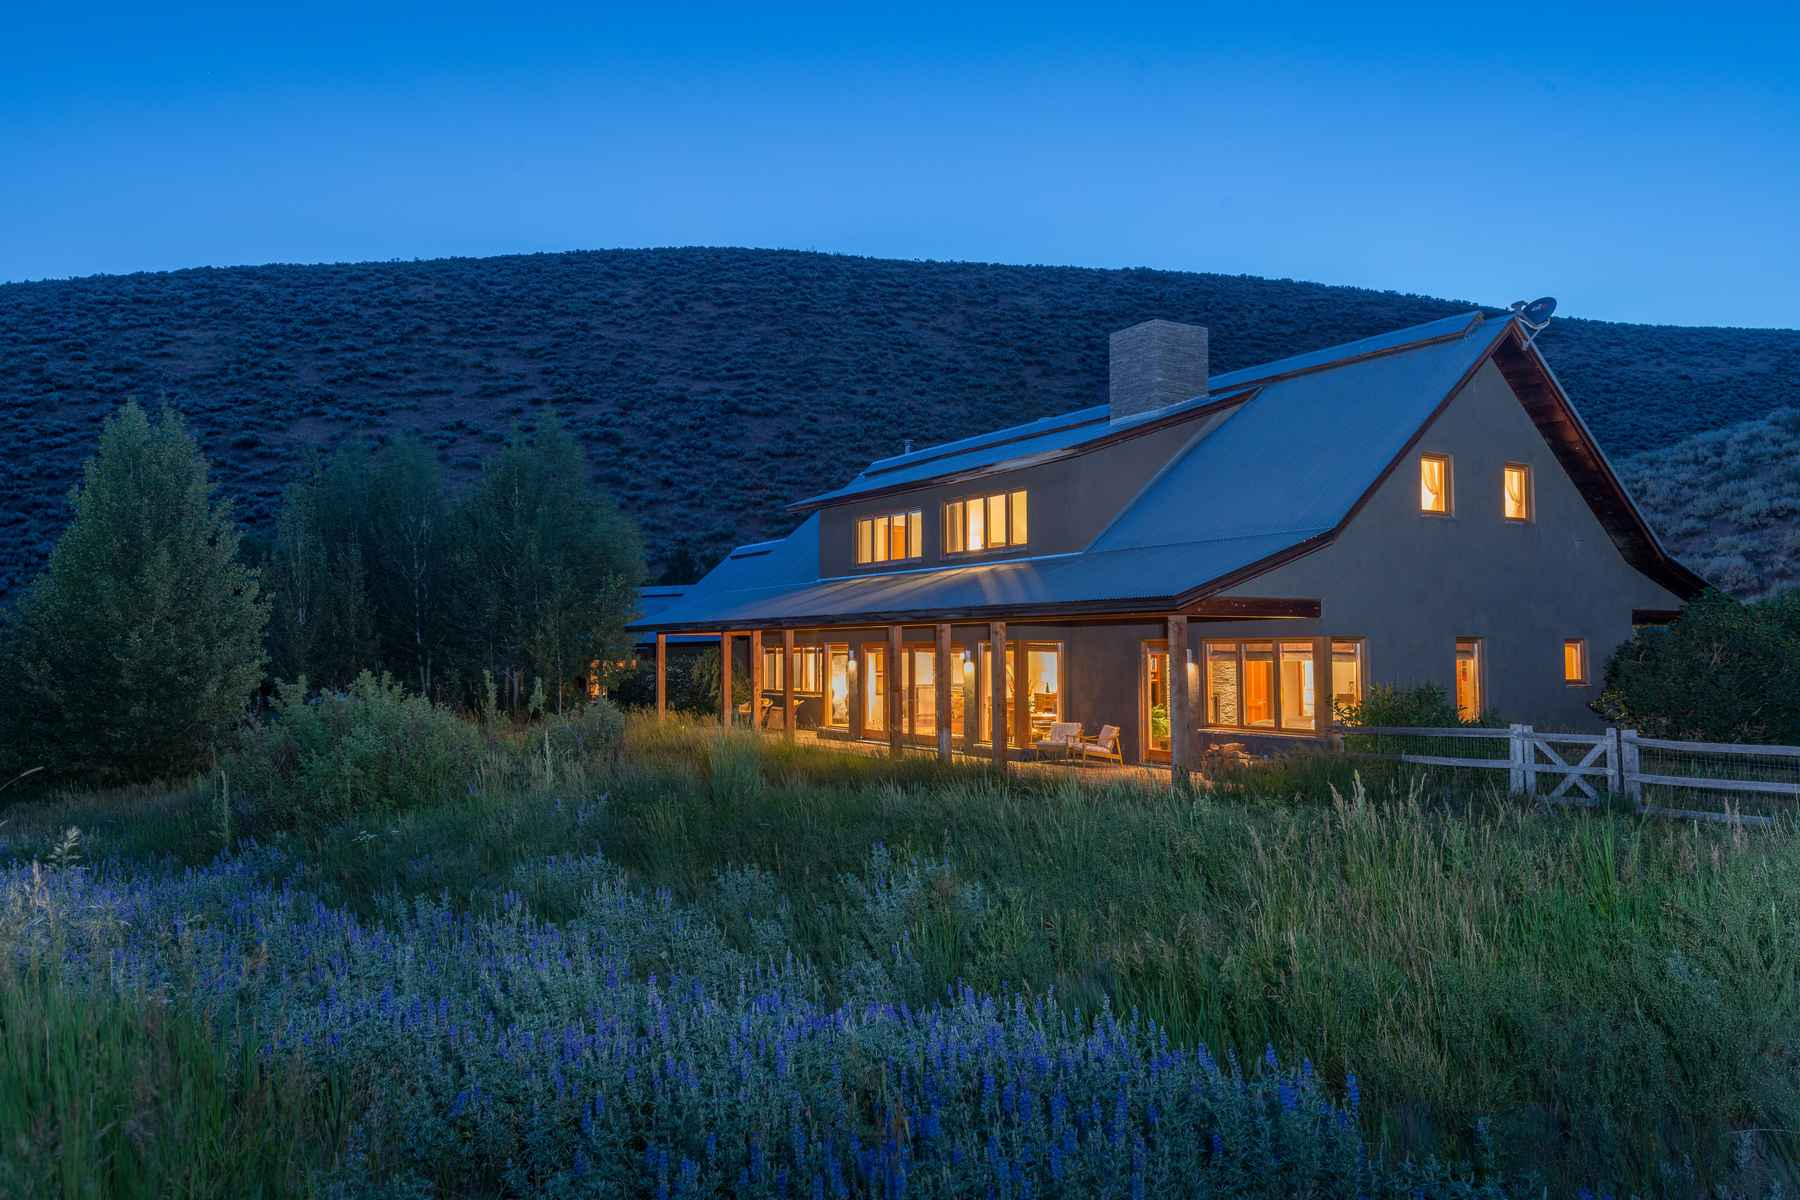 Single Family Home for Sale at Mountain Contemporary with Privacy 224 Red Devil Dr Hailey, Idaho 83333 United States